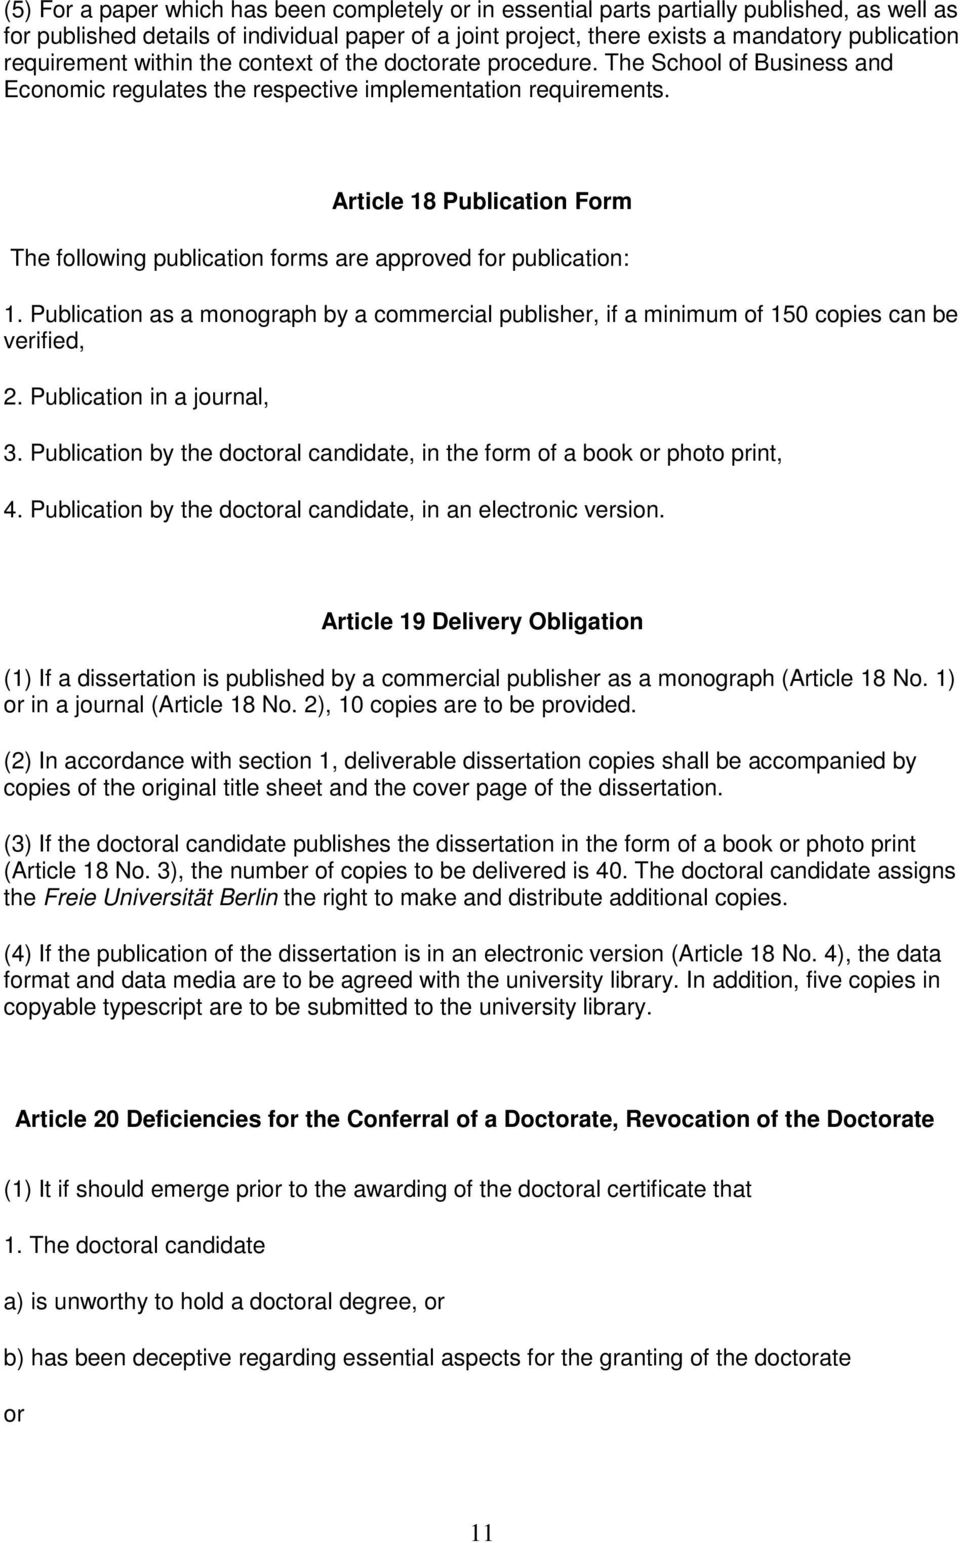 Article 18 Publication Form The following publication forms are approved for publication: 1. Publication as a monograph by a commercial publisher, if a minimum of 150 copies can be verified, 2.